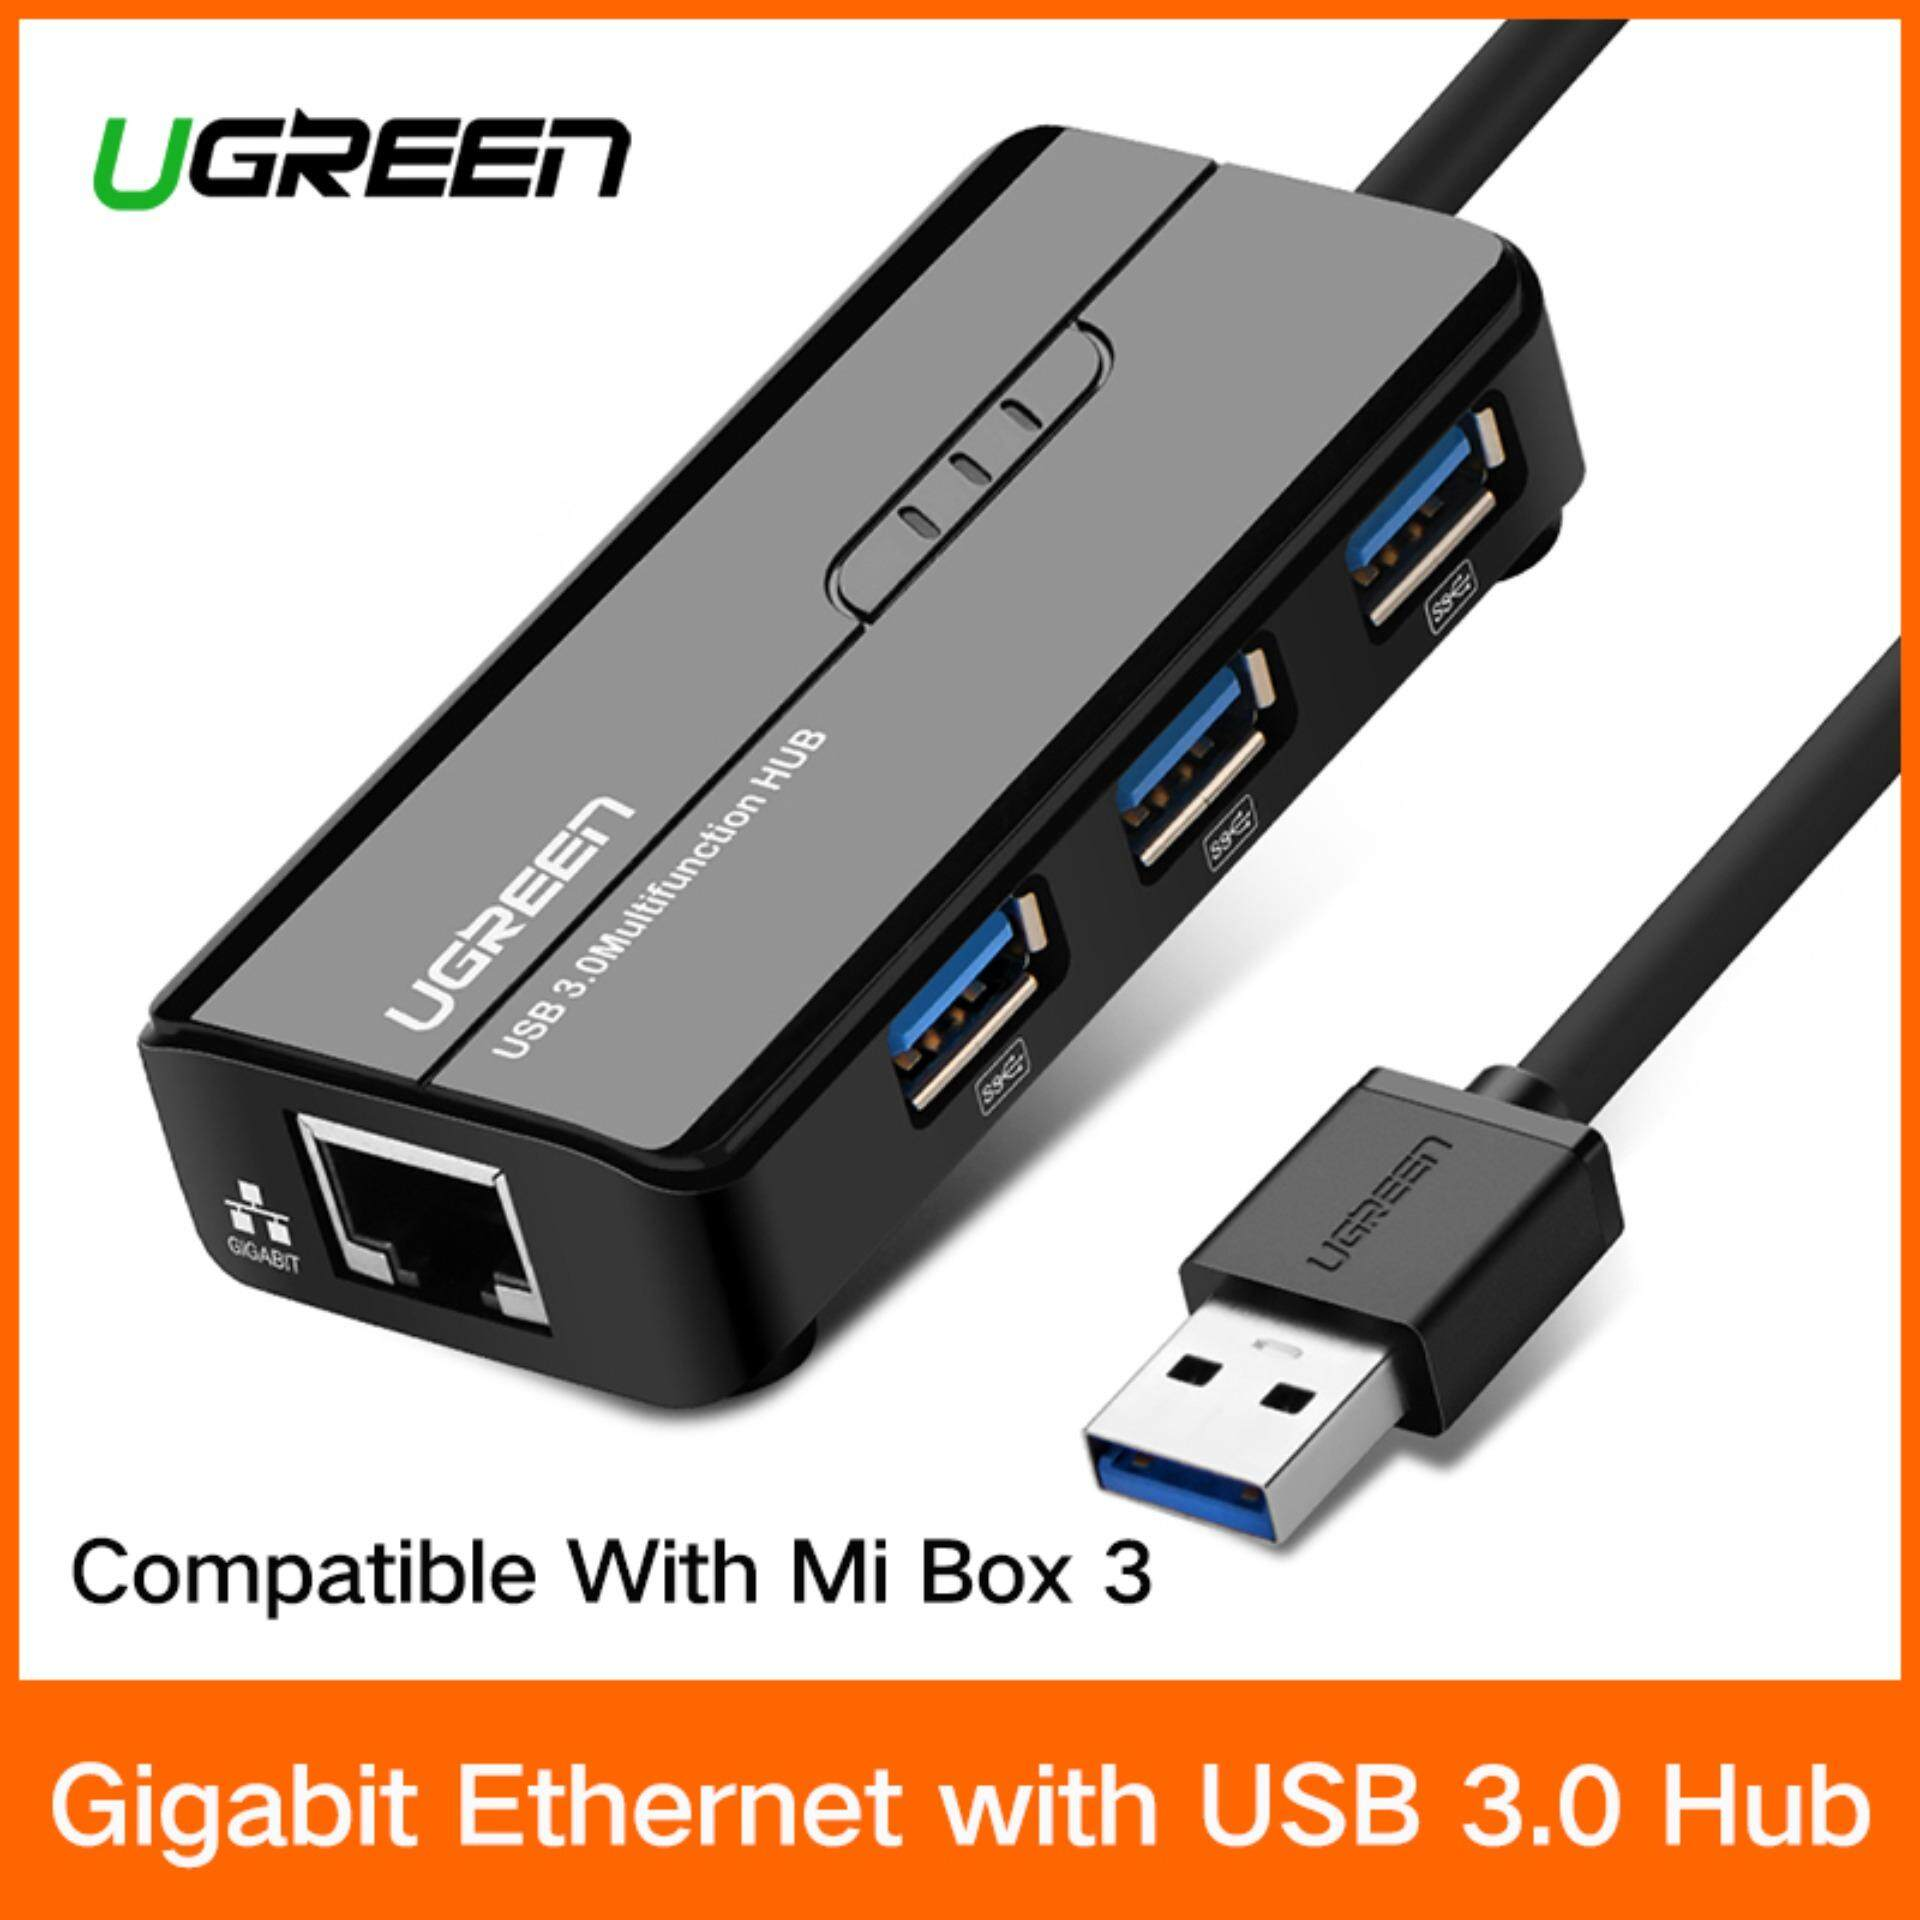 Usb Power Booster For Pc Laptop Computer Ethernet Adapters The Best Prices In Malaysia Ugreen Adapter Gigabit Network 10 100 1000mbps 1 Gbps With